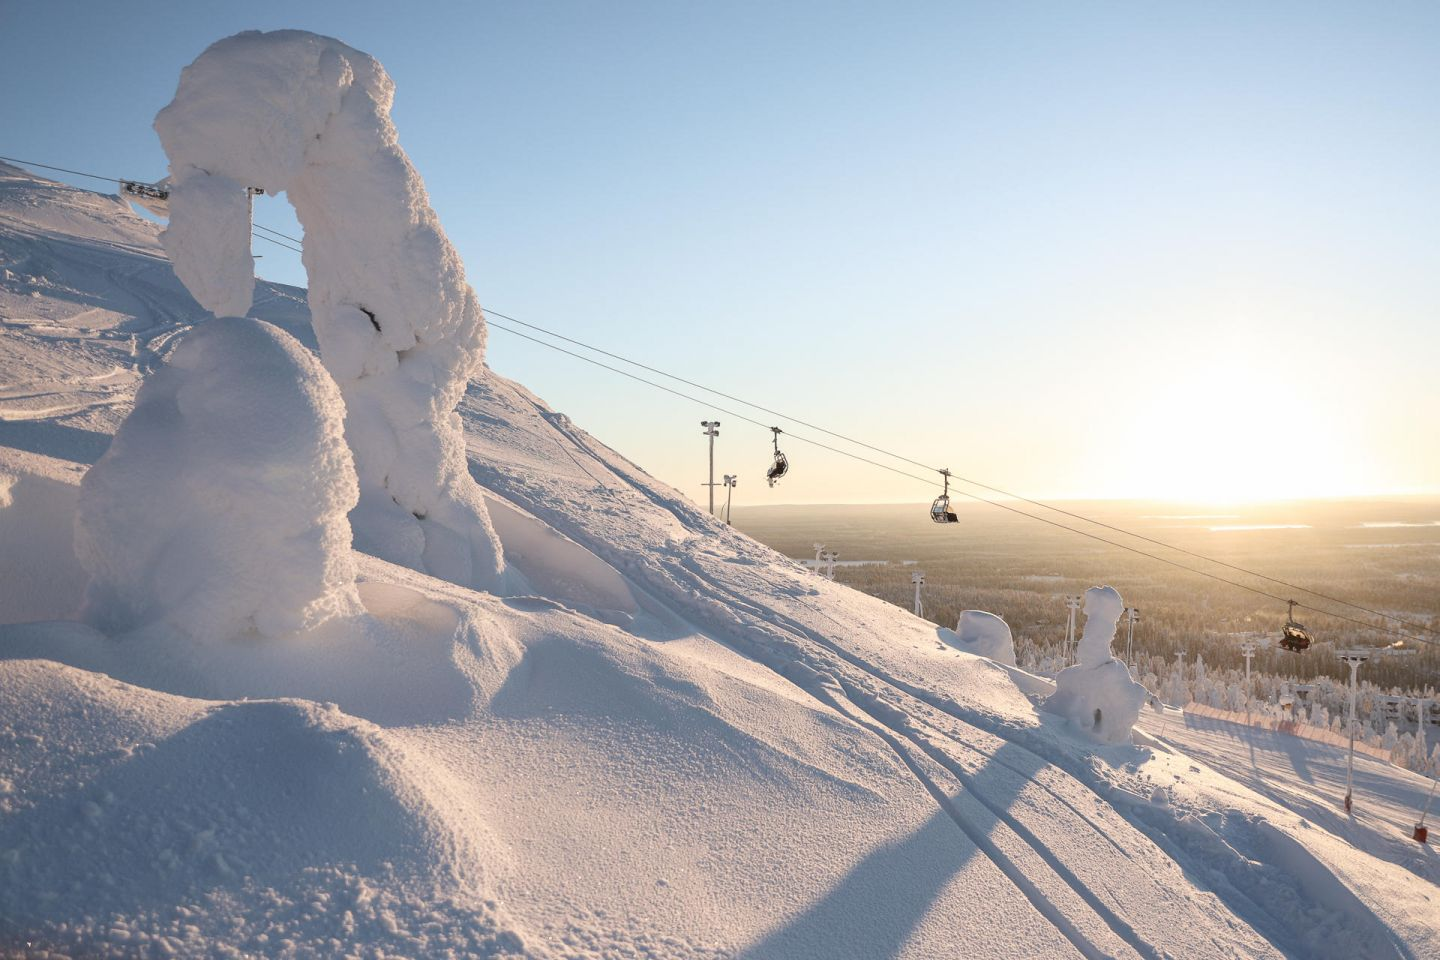 Chair lifts at the Ruka Ski Resort in Finnish Lapland